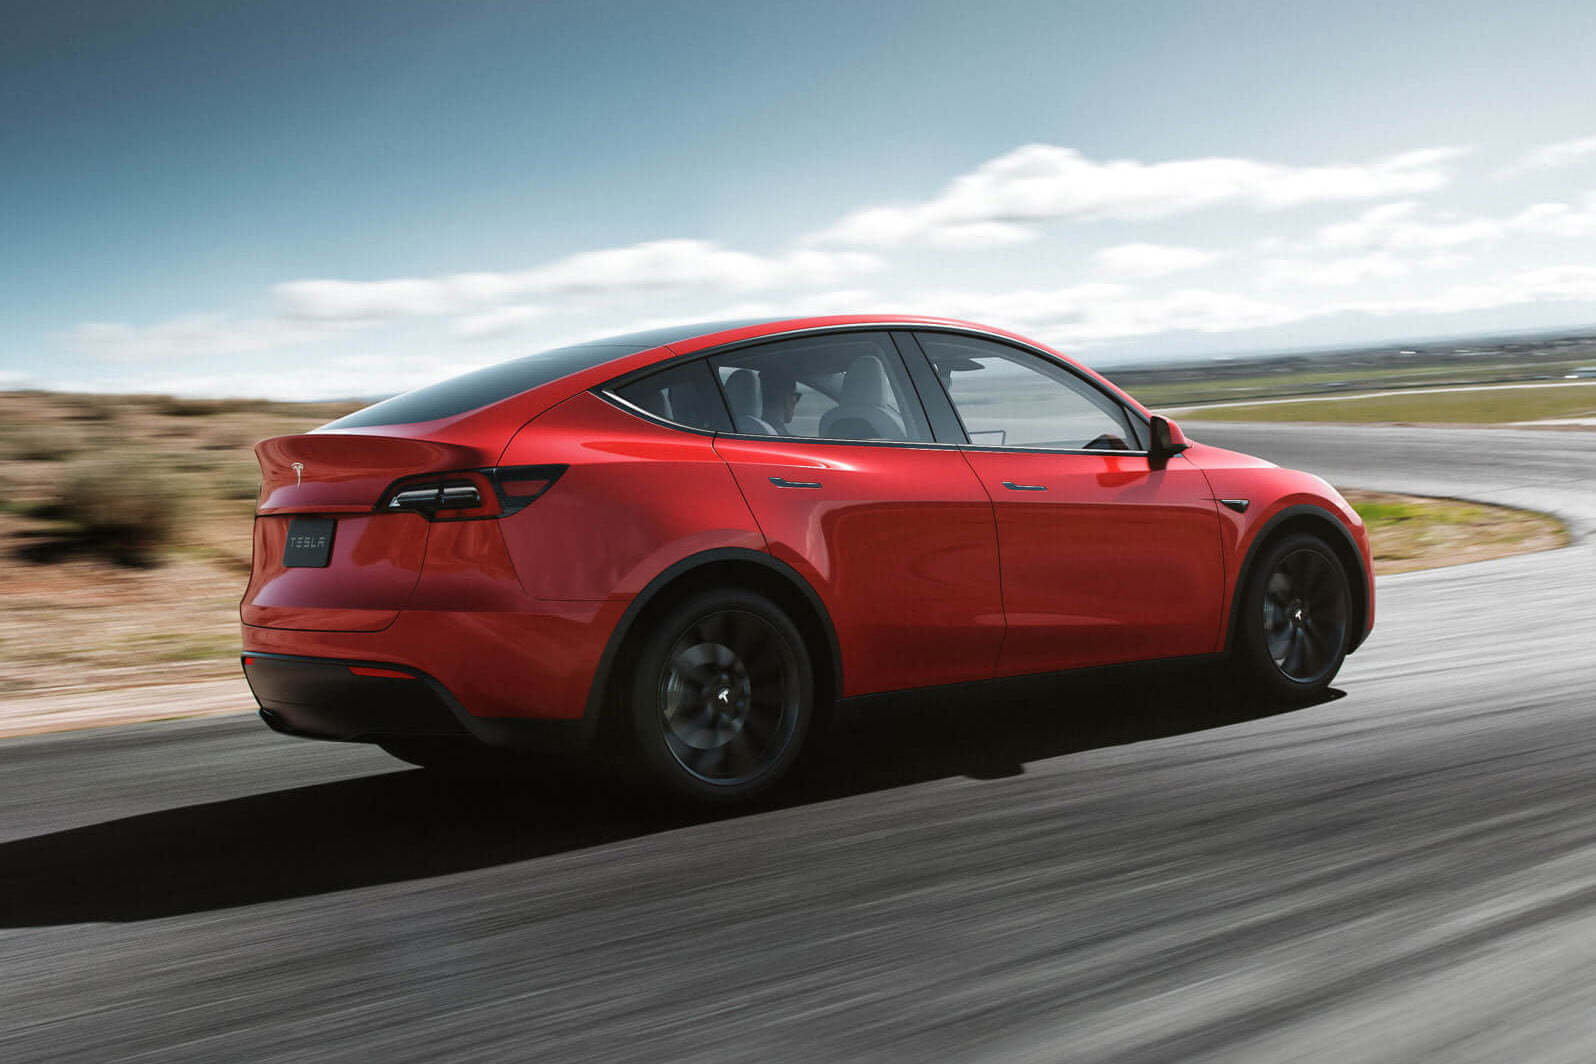 2021 tesla model y electric crossover spotted testing in california render red